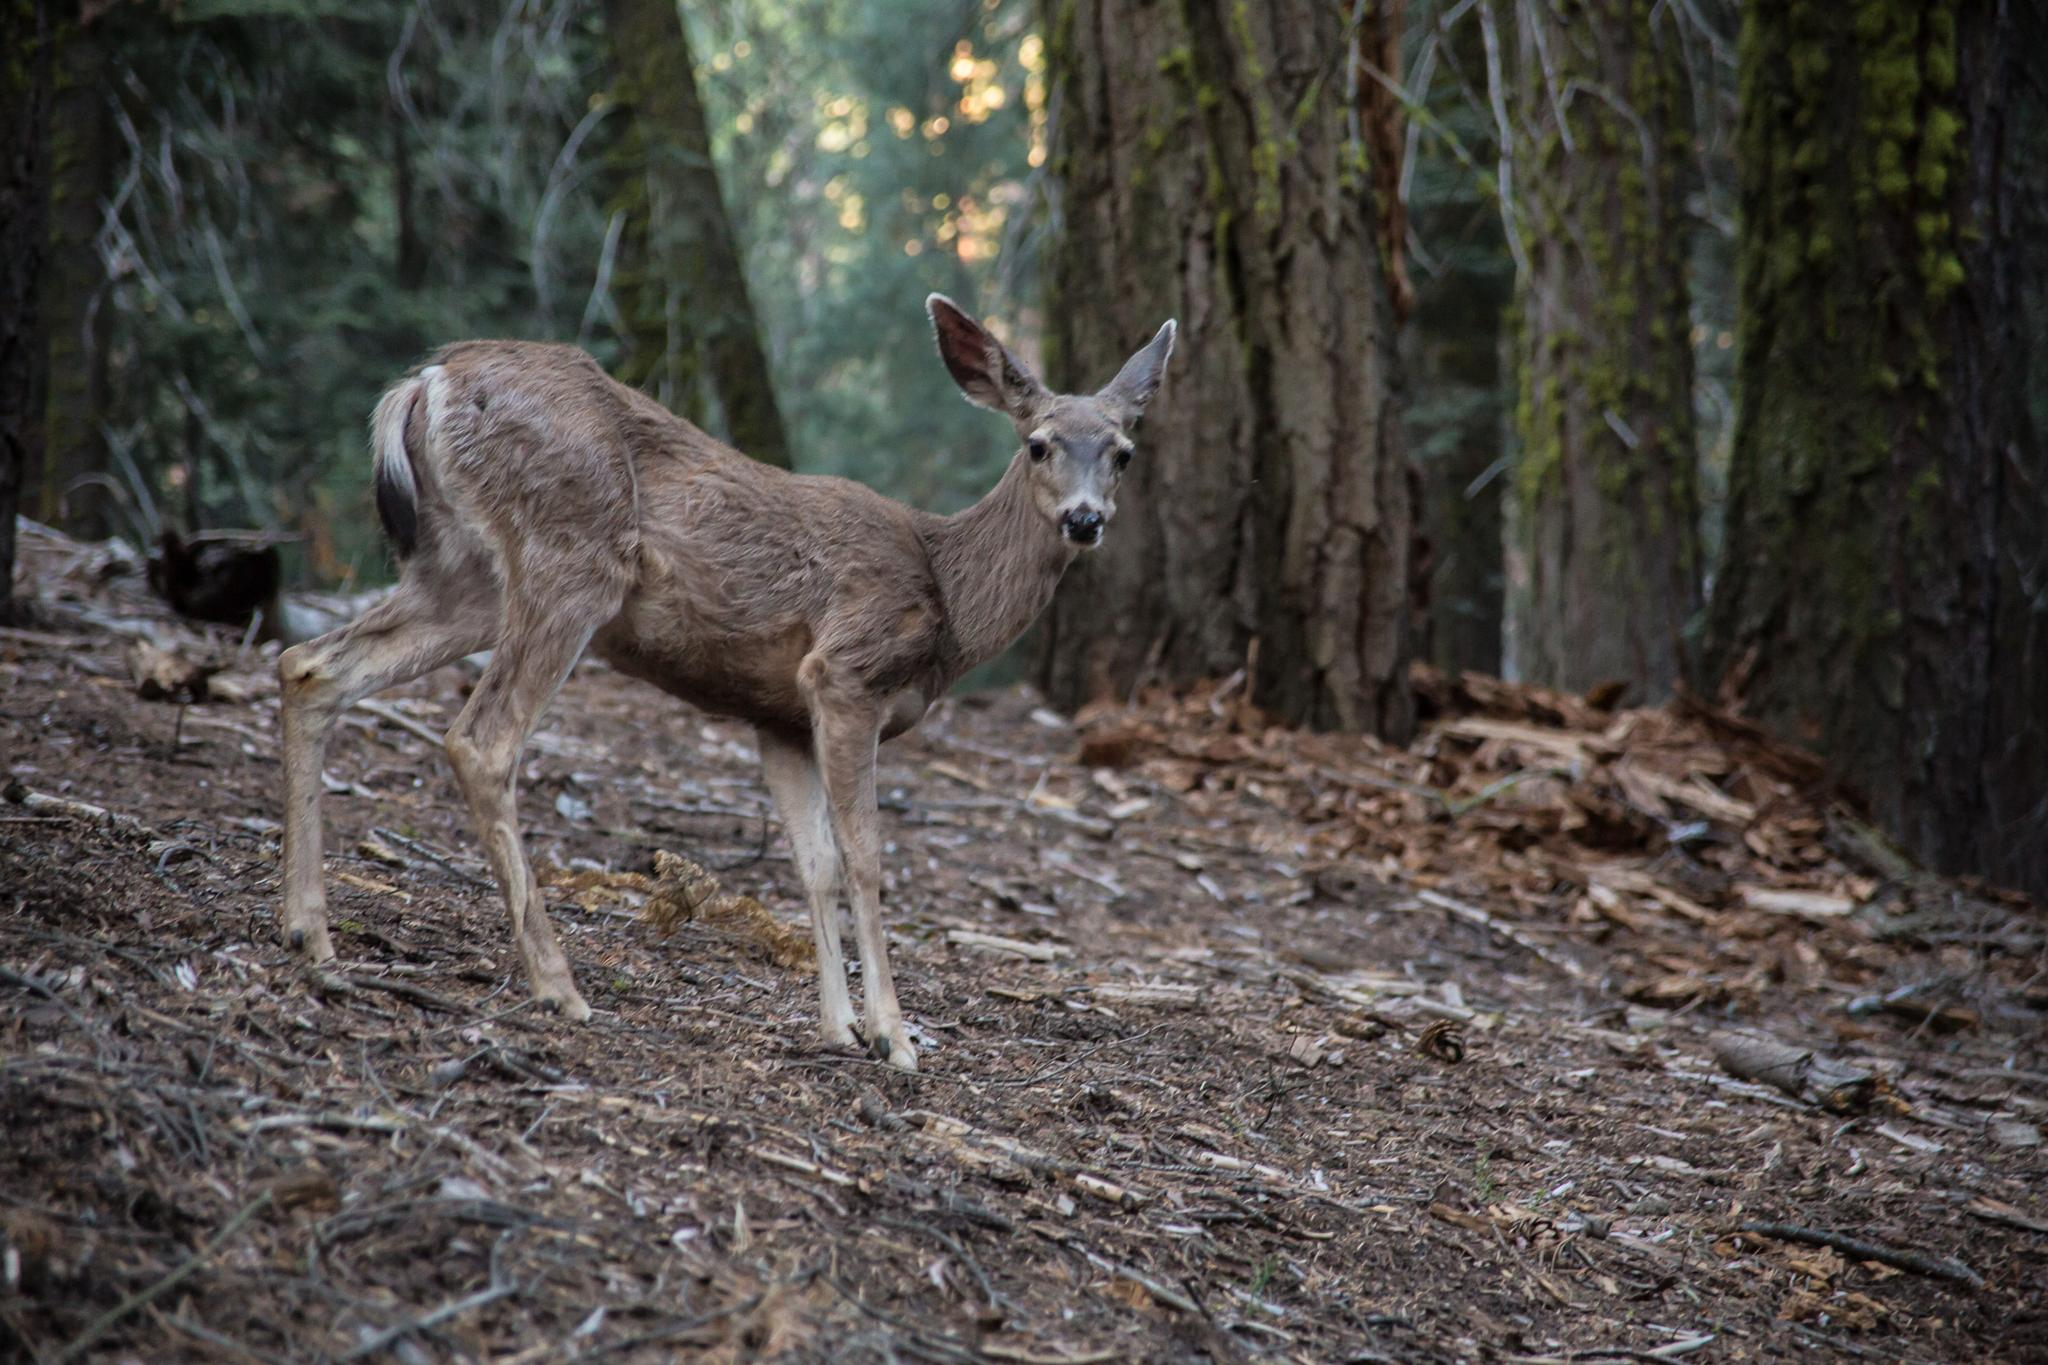 Deer by the General Sherman Tree in Sequoia National Park  by scott.smallie